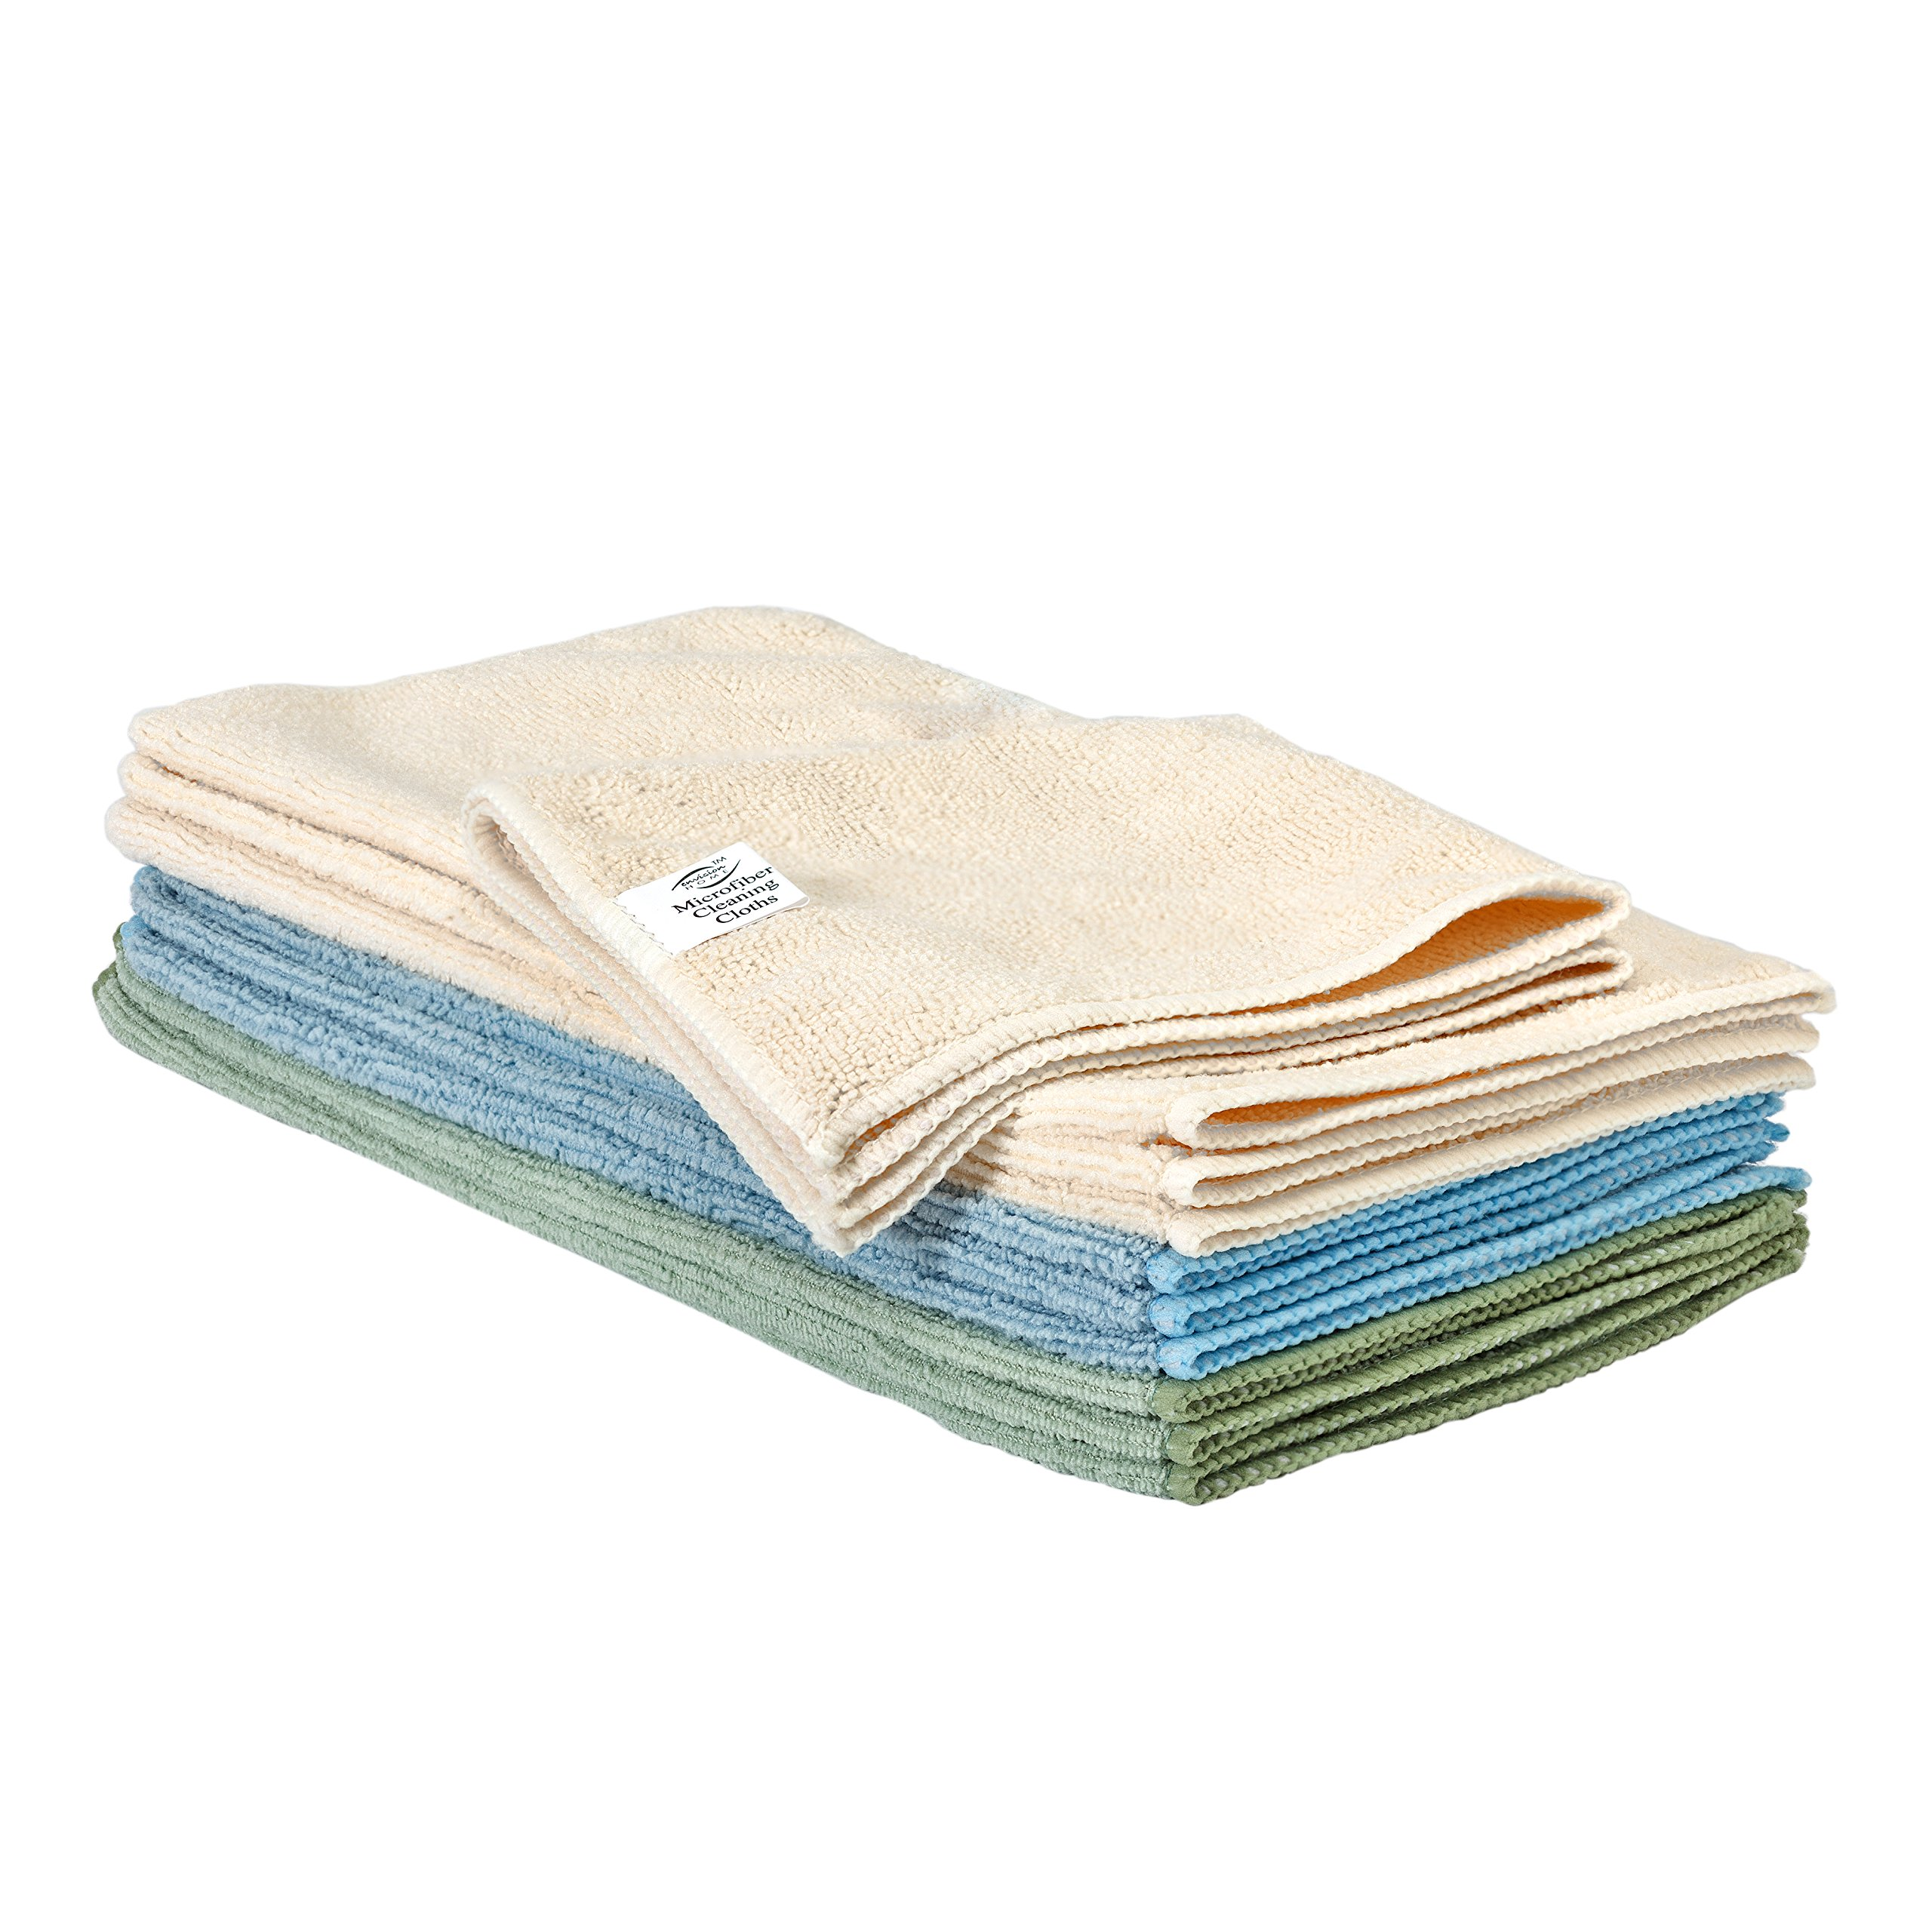 Envision Home 10-Pack Microfiber Cleaning Cloths, 12 by 12-Inch